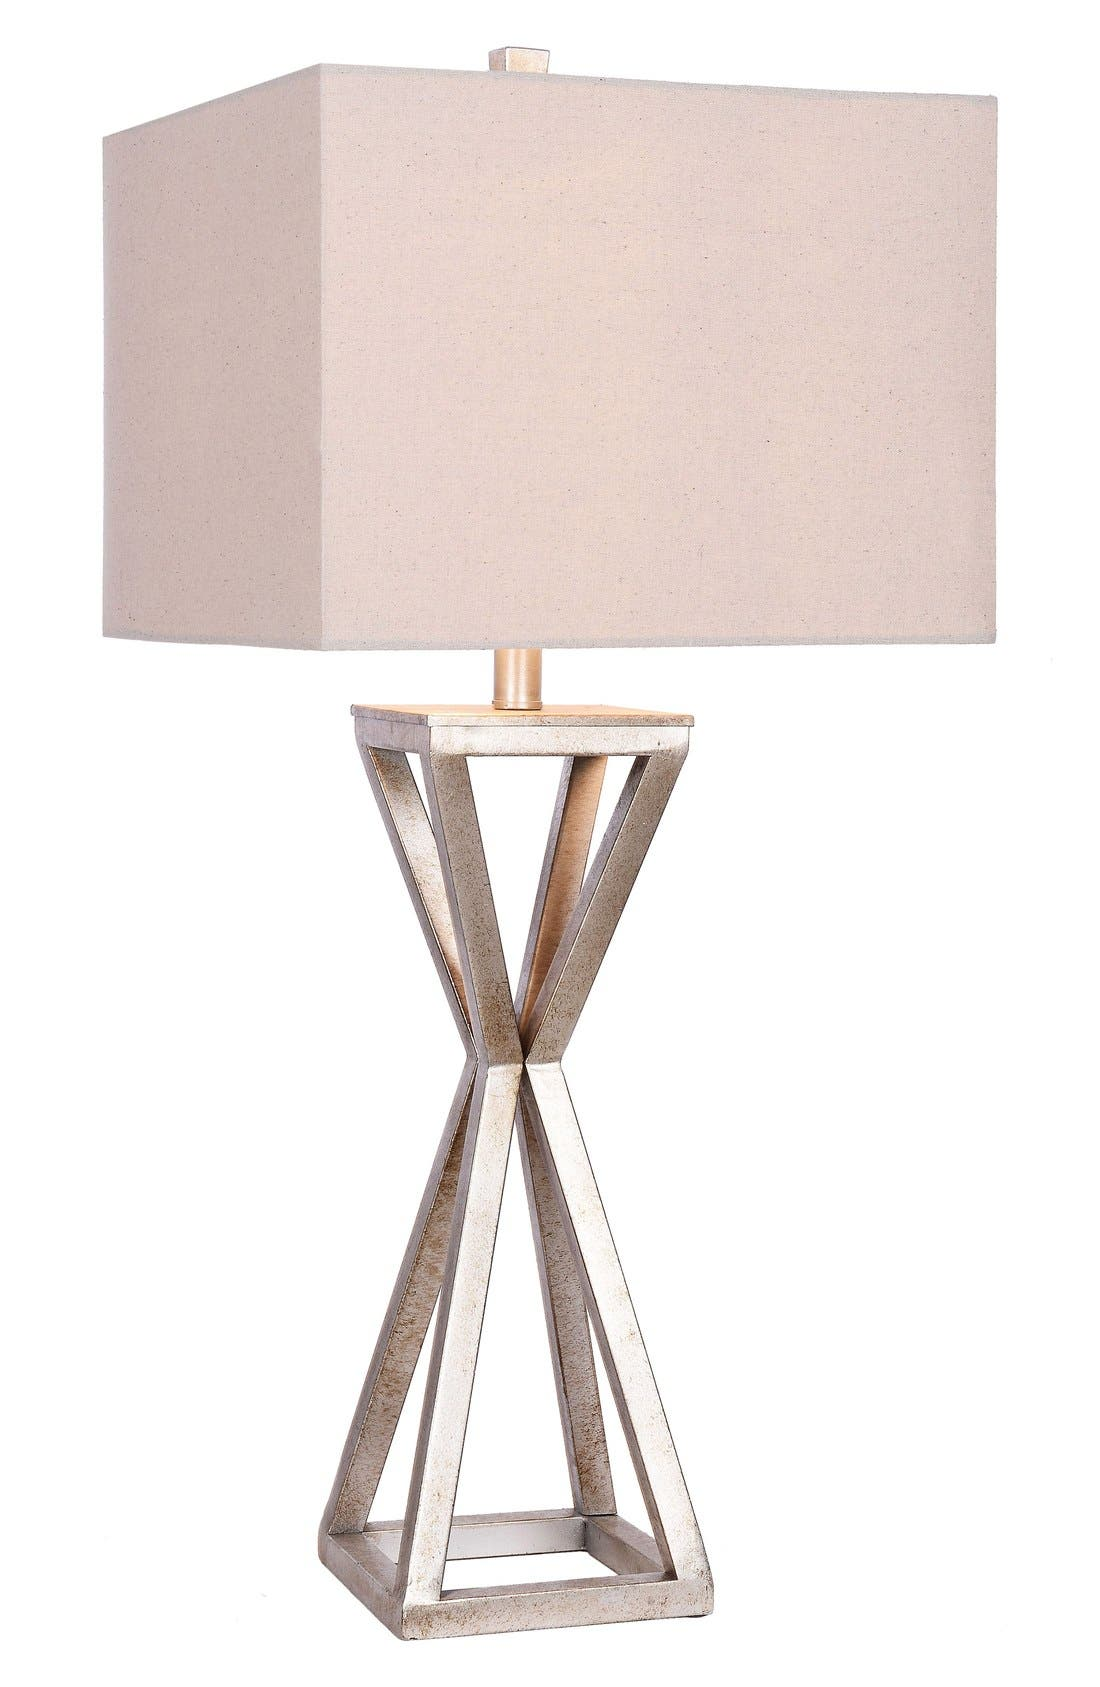 JAlexander Carrie Open Caged Metal Table Lamp